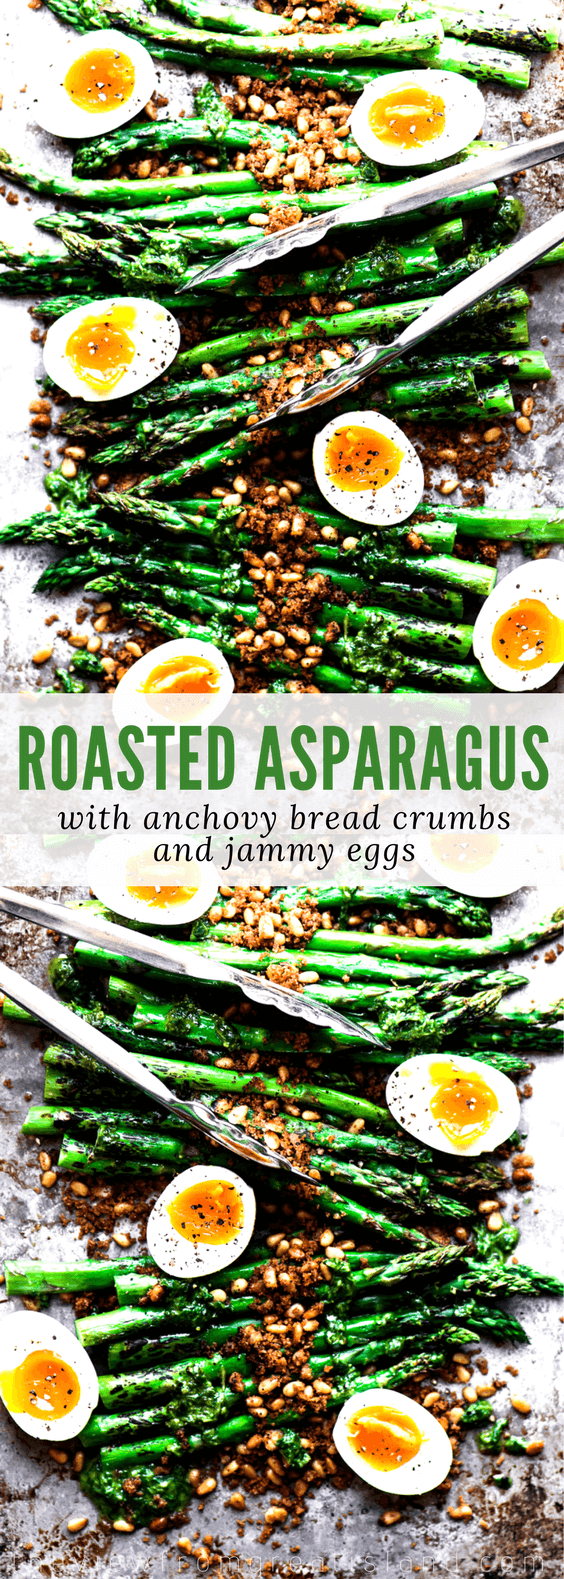 Roasted Asparagus with Crispy Breadcrumbs, Pine Nuts, and Runny Eggs ~ This easy Yotam Ottolengi inspired asparagus recipe will become a new favorite side dish. #asparagus #sidedish #grilling #roastedvegetables #ottolenghi #healthy #runnyeggs #jammyeggs